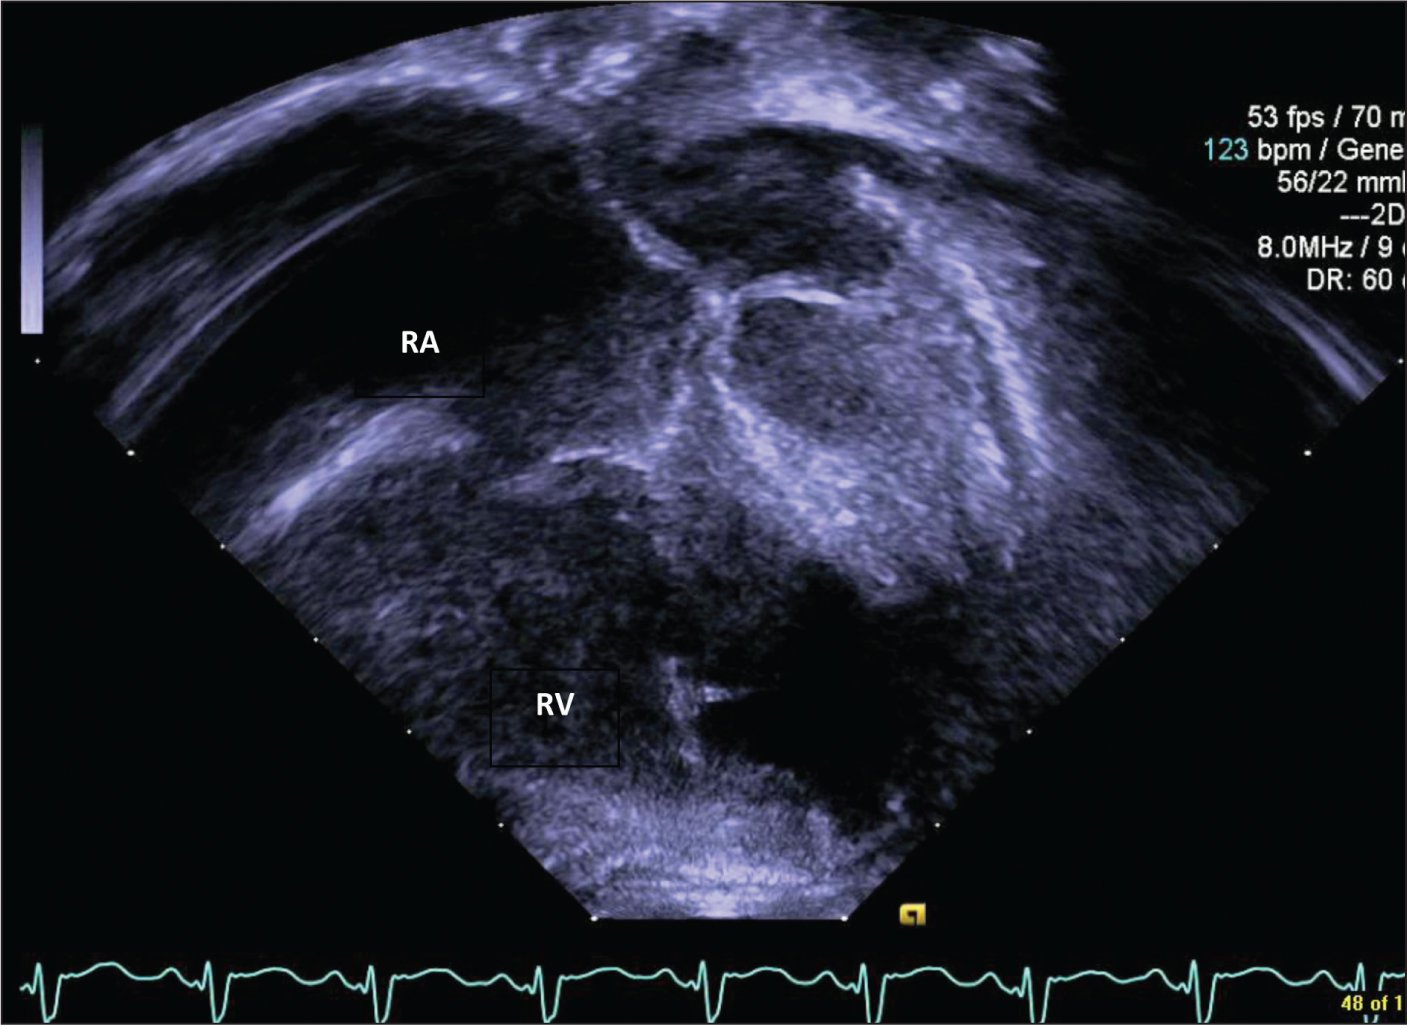 Echocardiogram: Apical four-chamber view demonstrating moderate right atrial enlargement and right ventricular dilation.